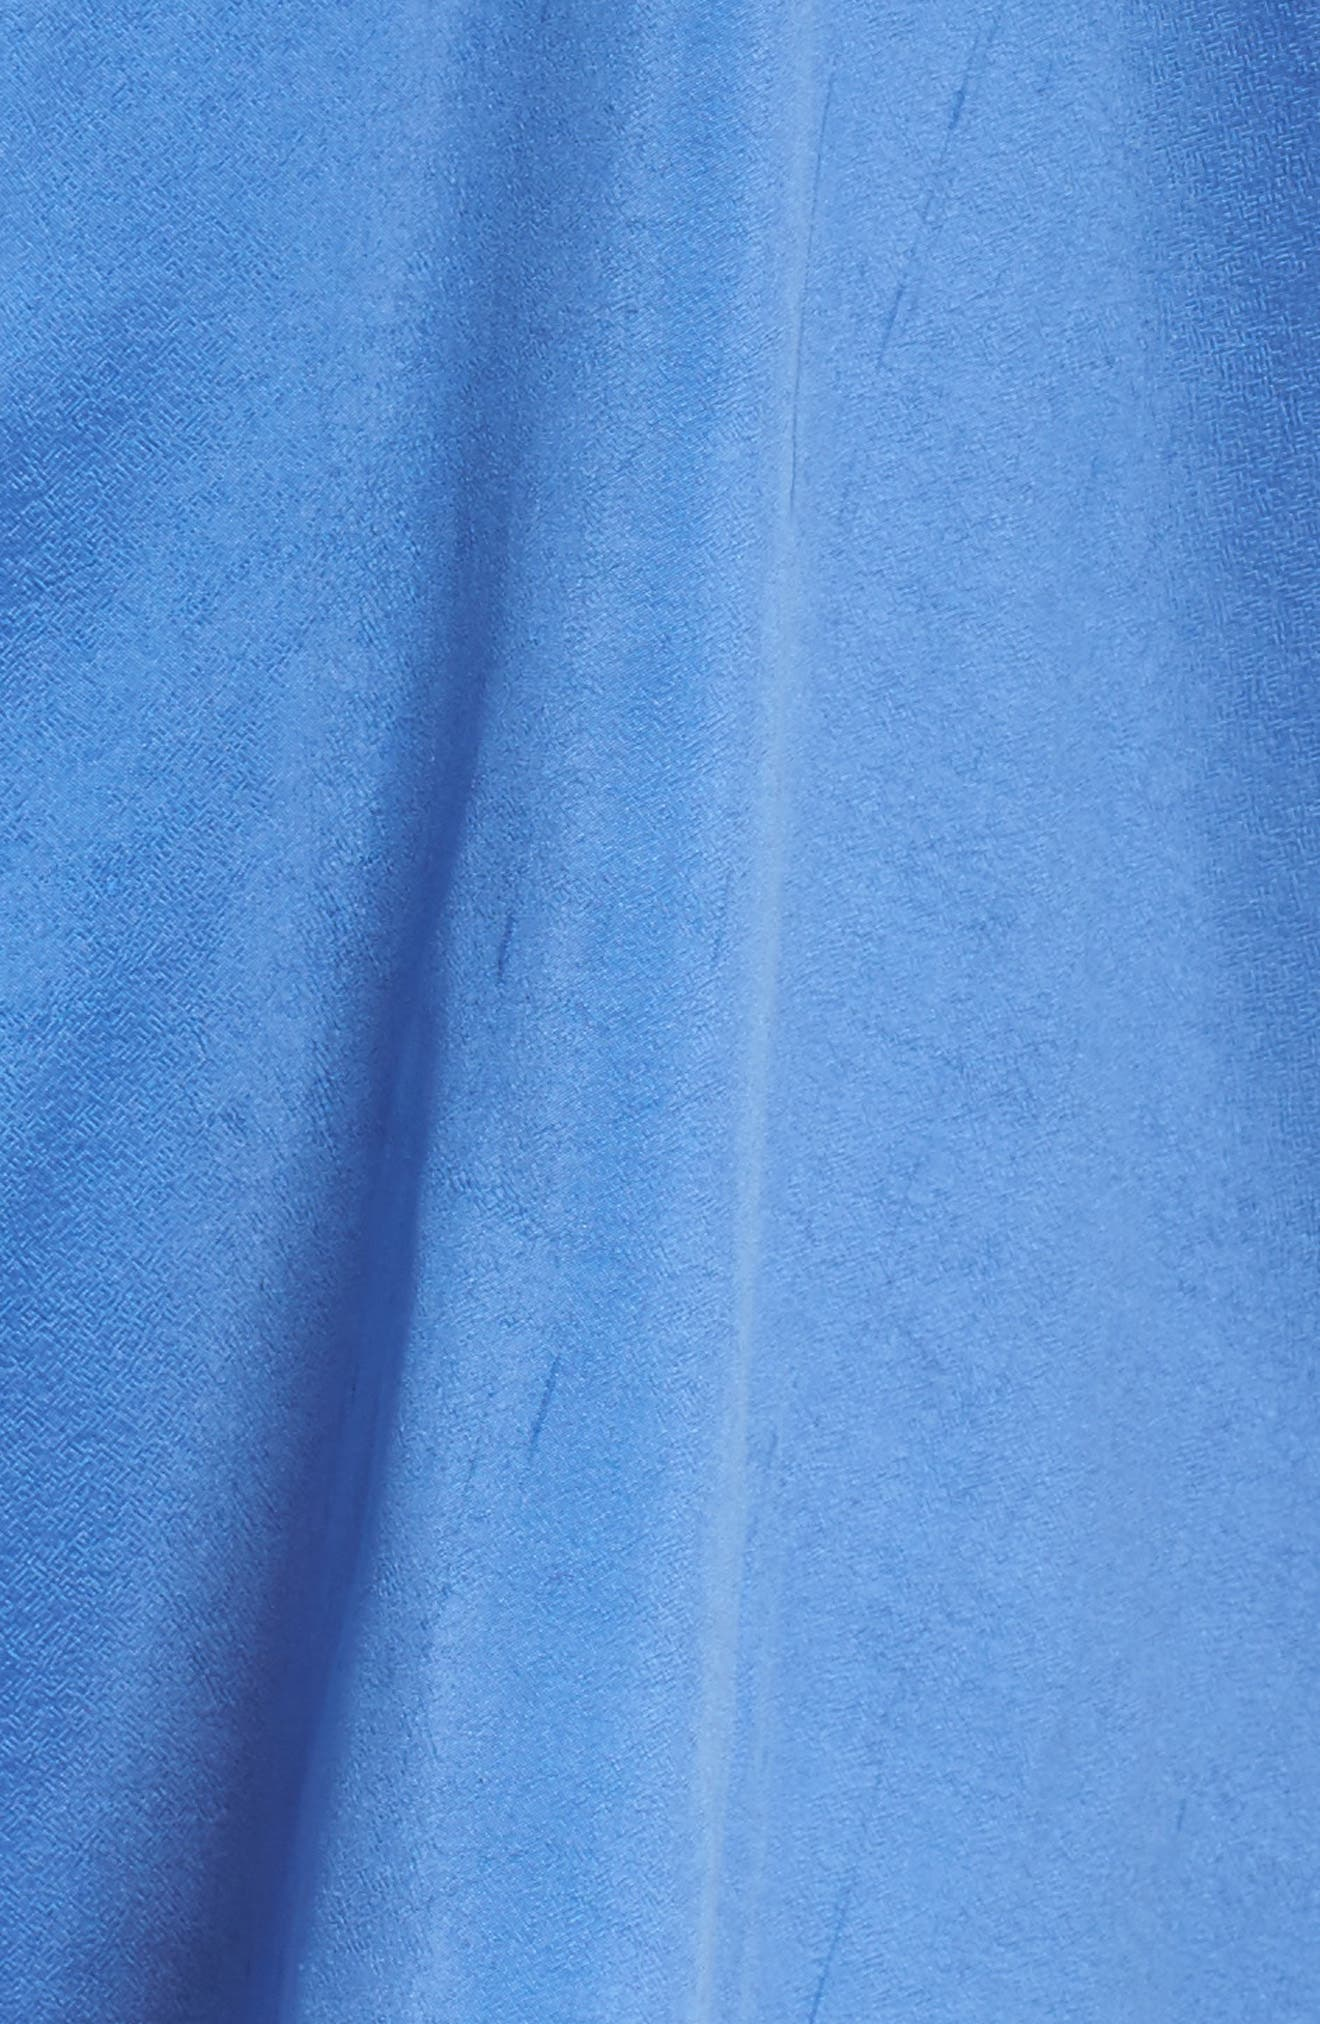 Notch Collar Shirt,                             Alternate thumbnail 5, color,                             Blue Bell